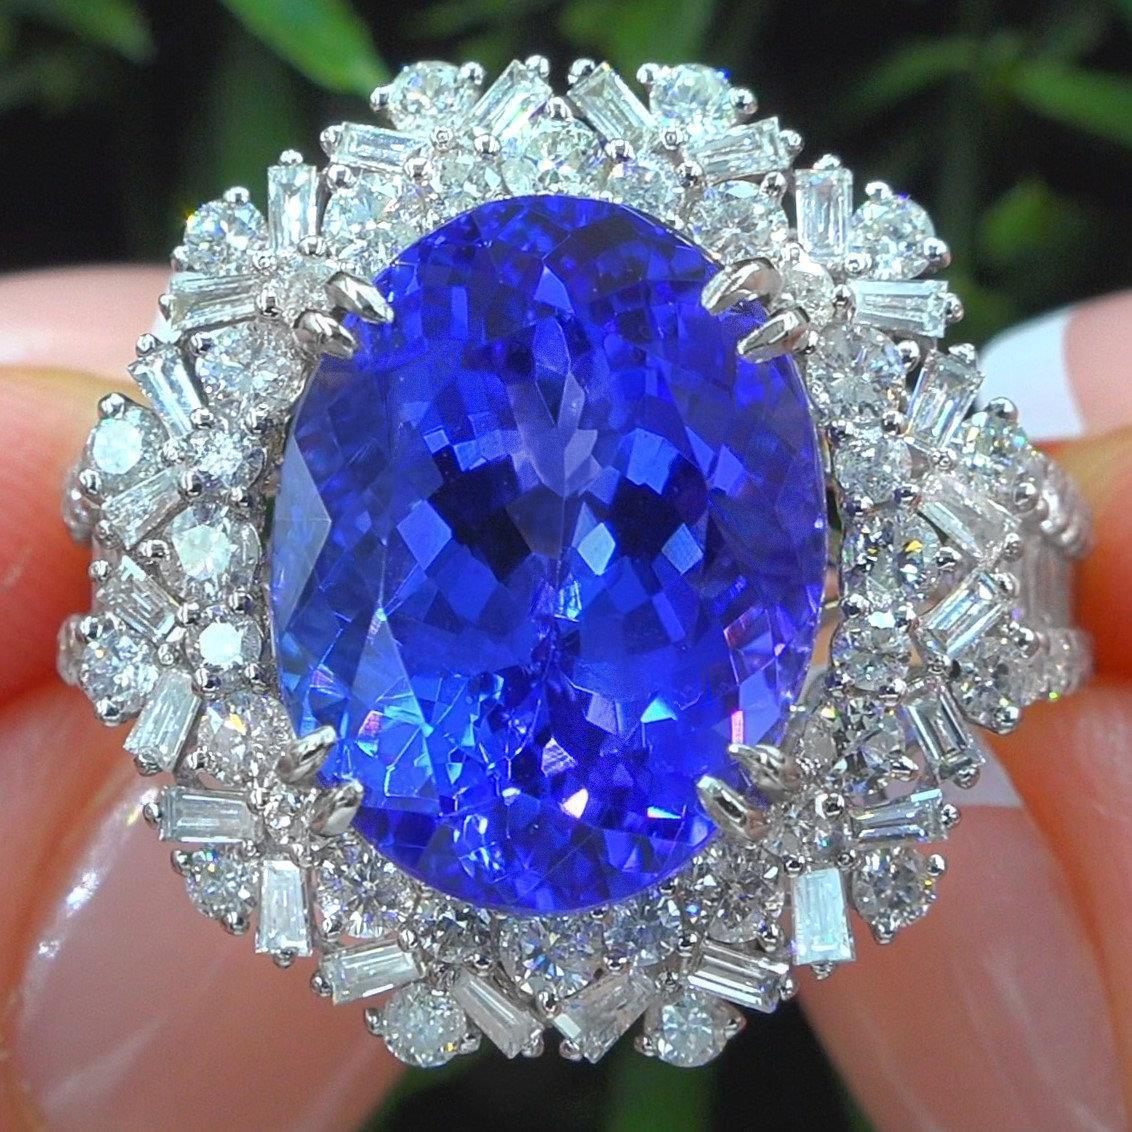 Tanzanite Diamond 18k Gold Estate Ring GIA Certified Top Quality GEM 14.24 TCW